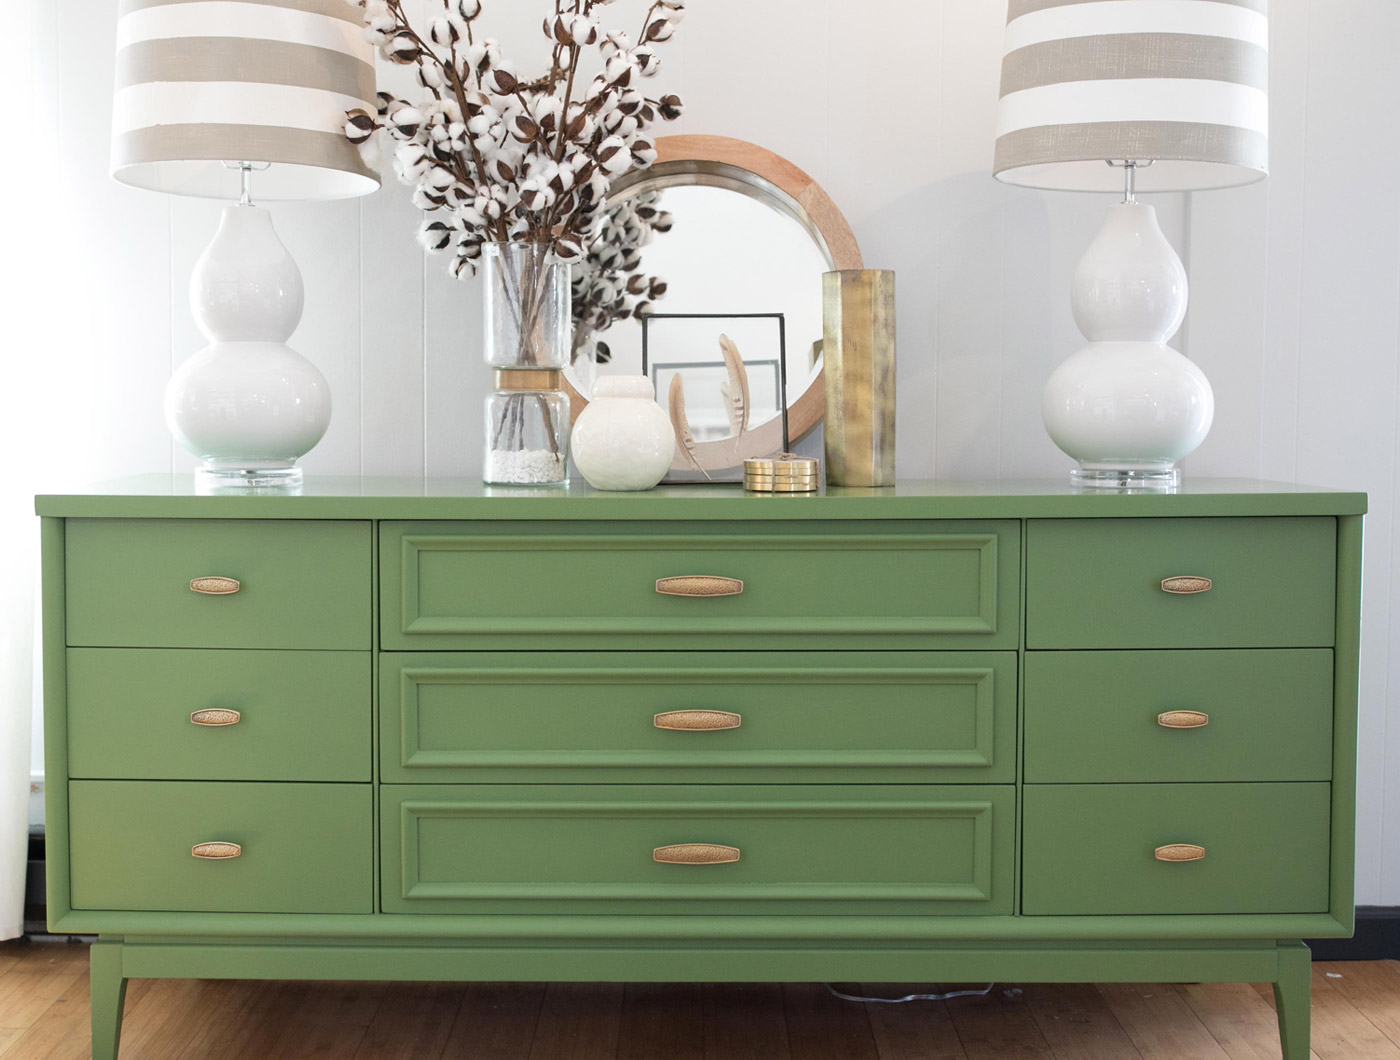 Lime Green Media Console Dresser - The Phinery Furniture Seattle